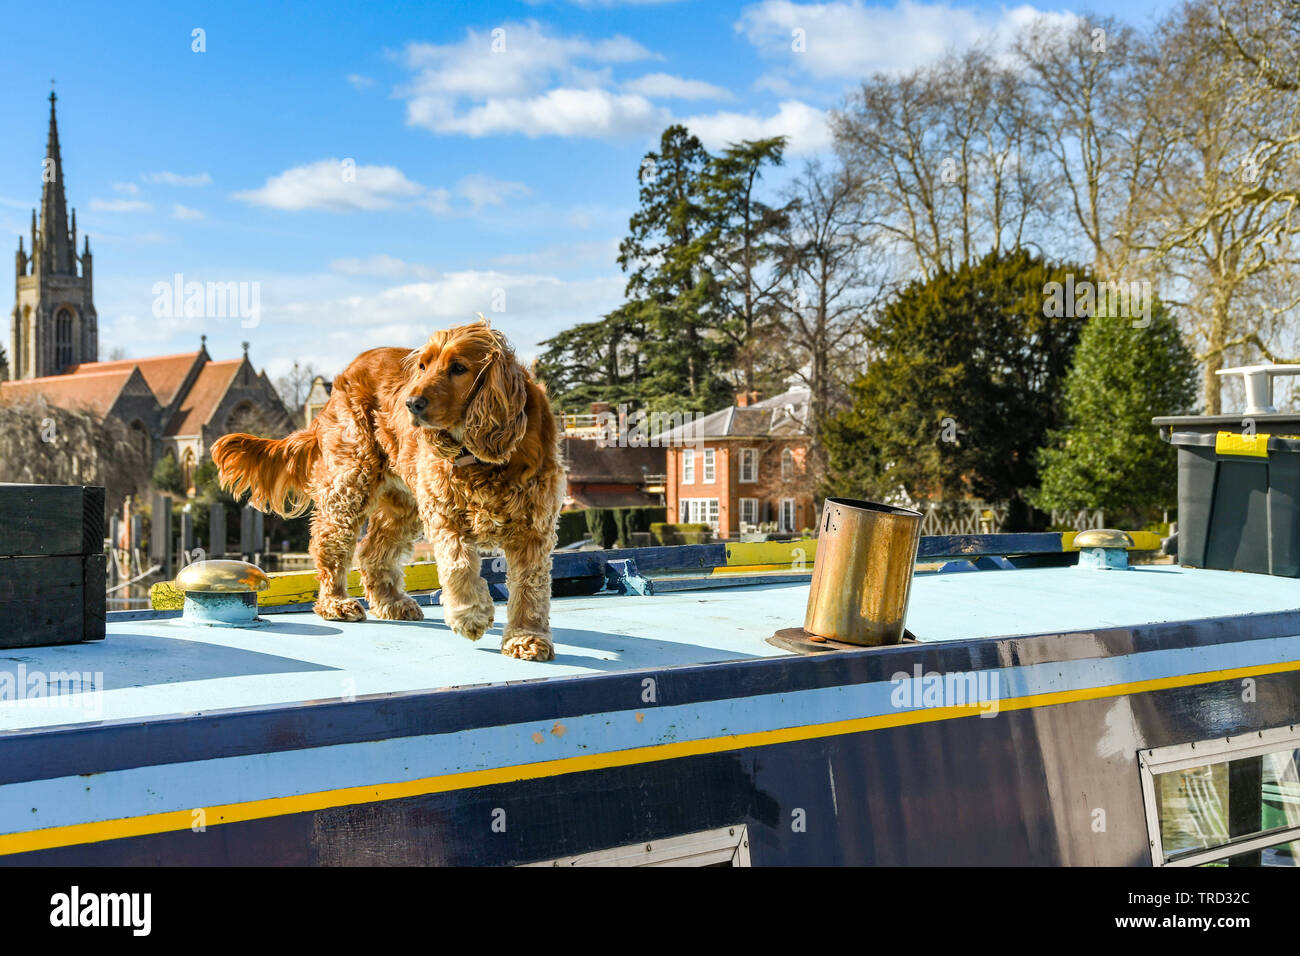 MARLOW, ENGLAND - MARCH 2019: Pet dog on top of a narrow boat on the River Thames in Marlow. Stock Photo